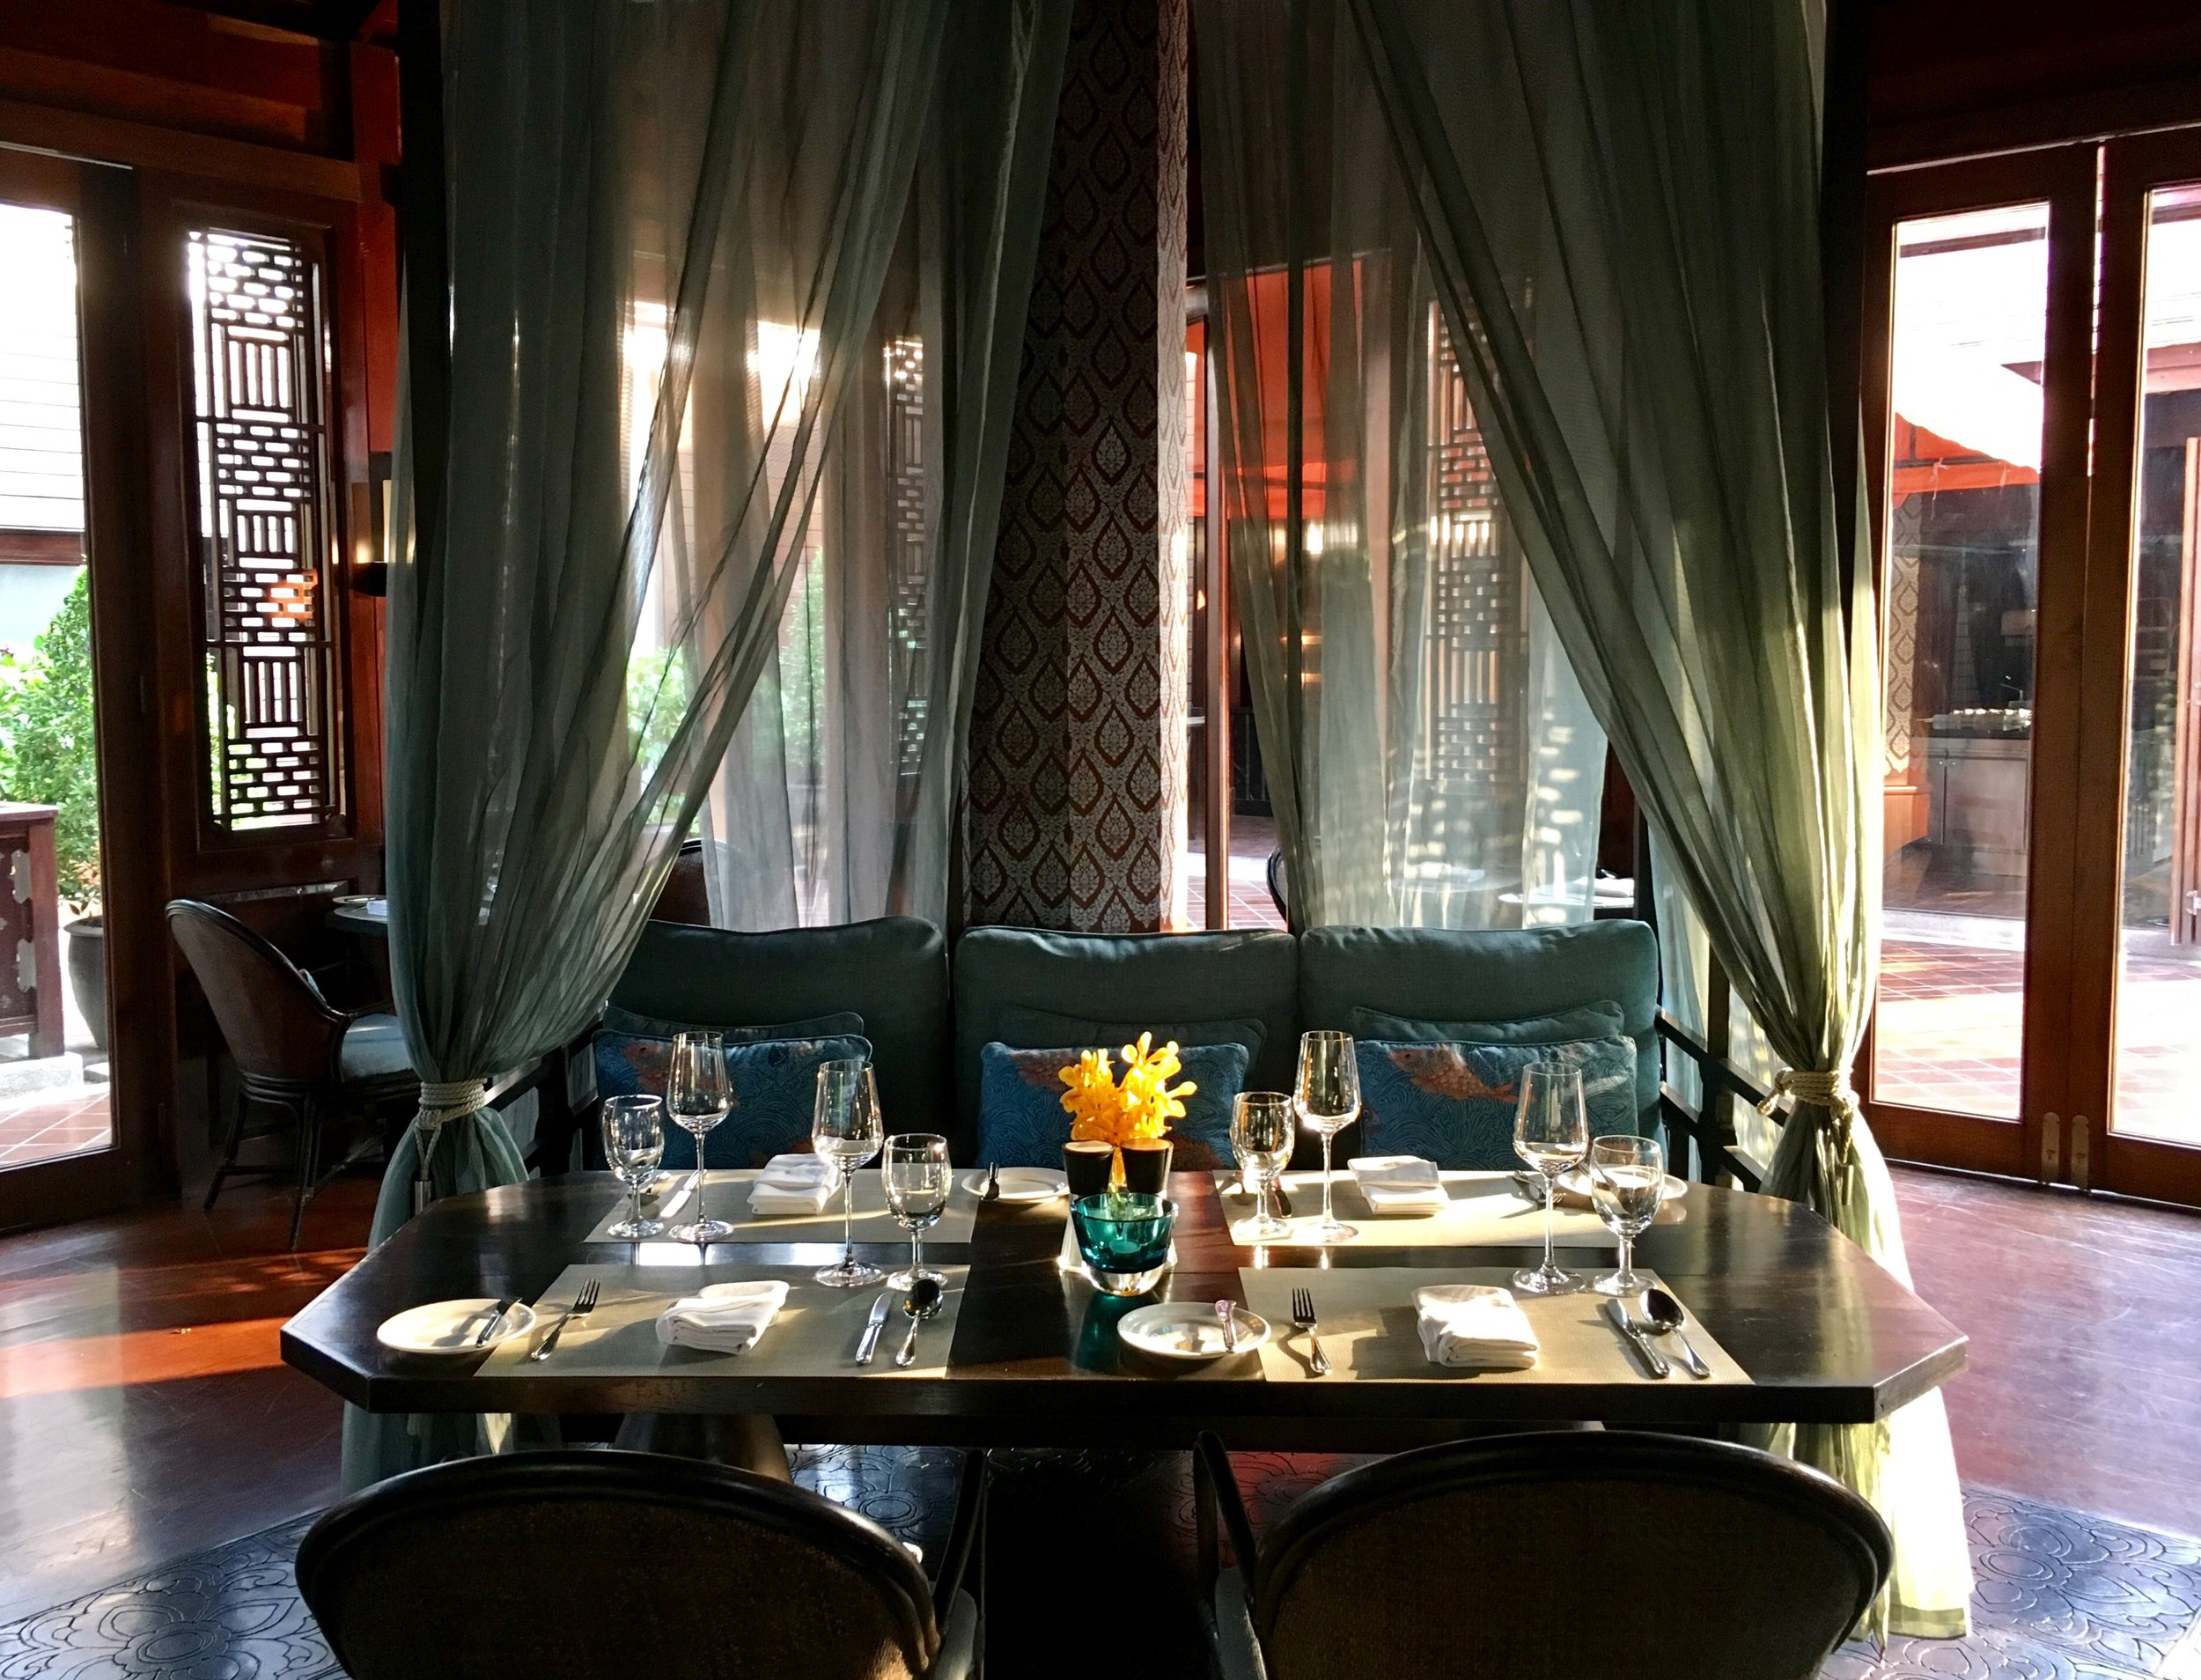 The Dining Room serves up breakfast and Asian dishes